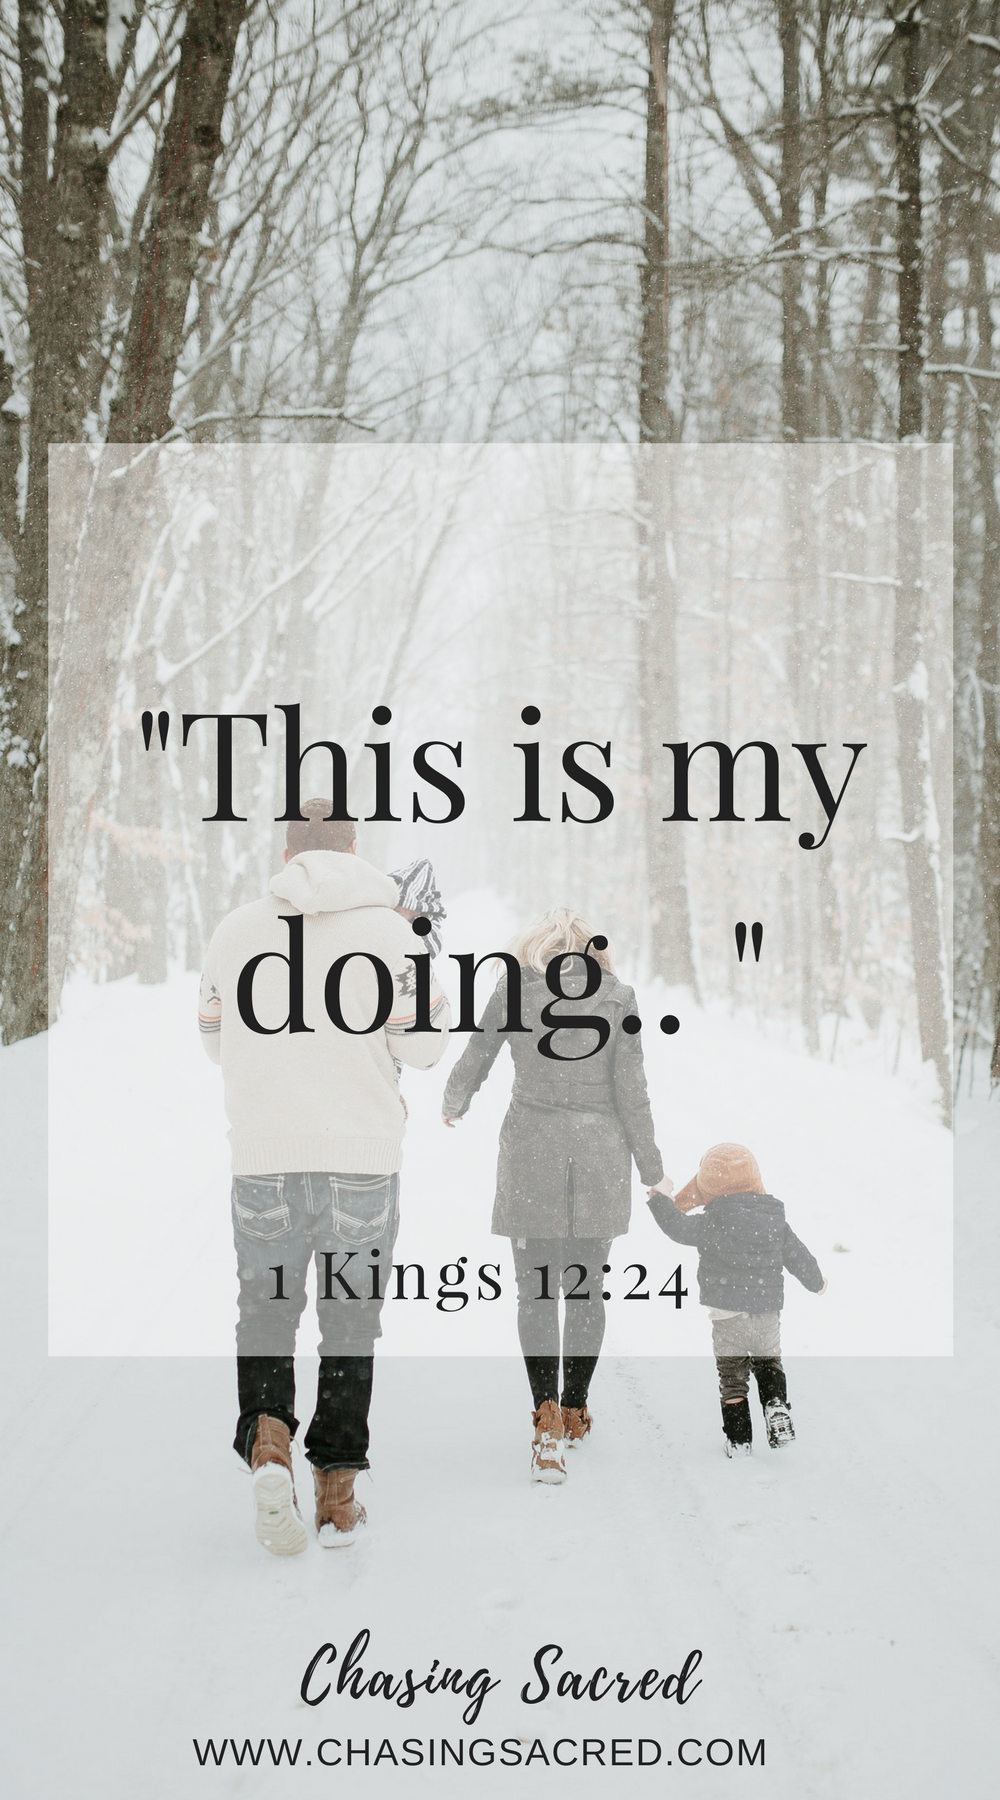 This is my doing | Chasing Sacred